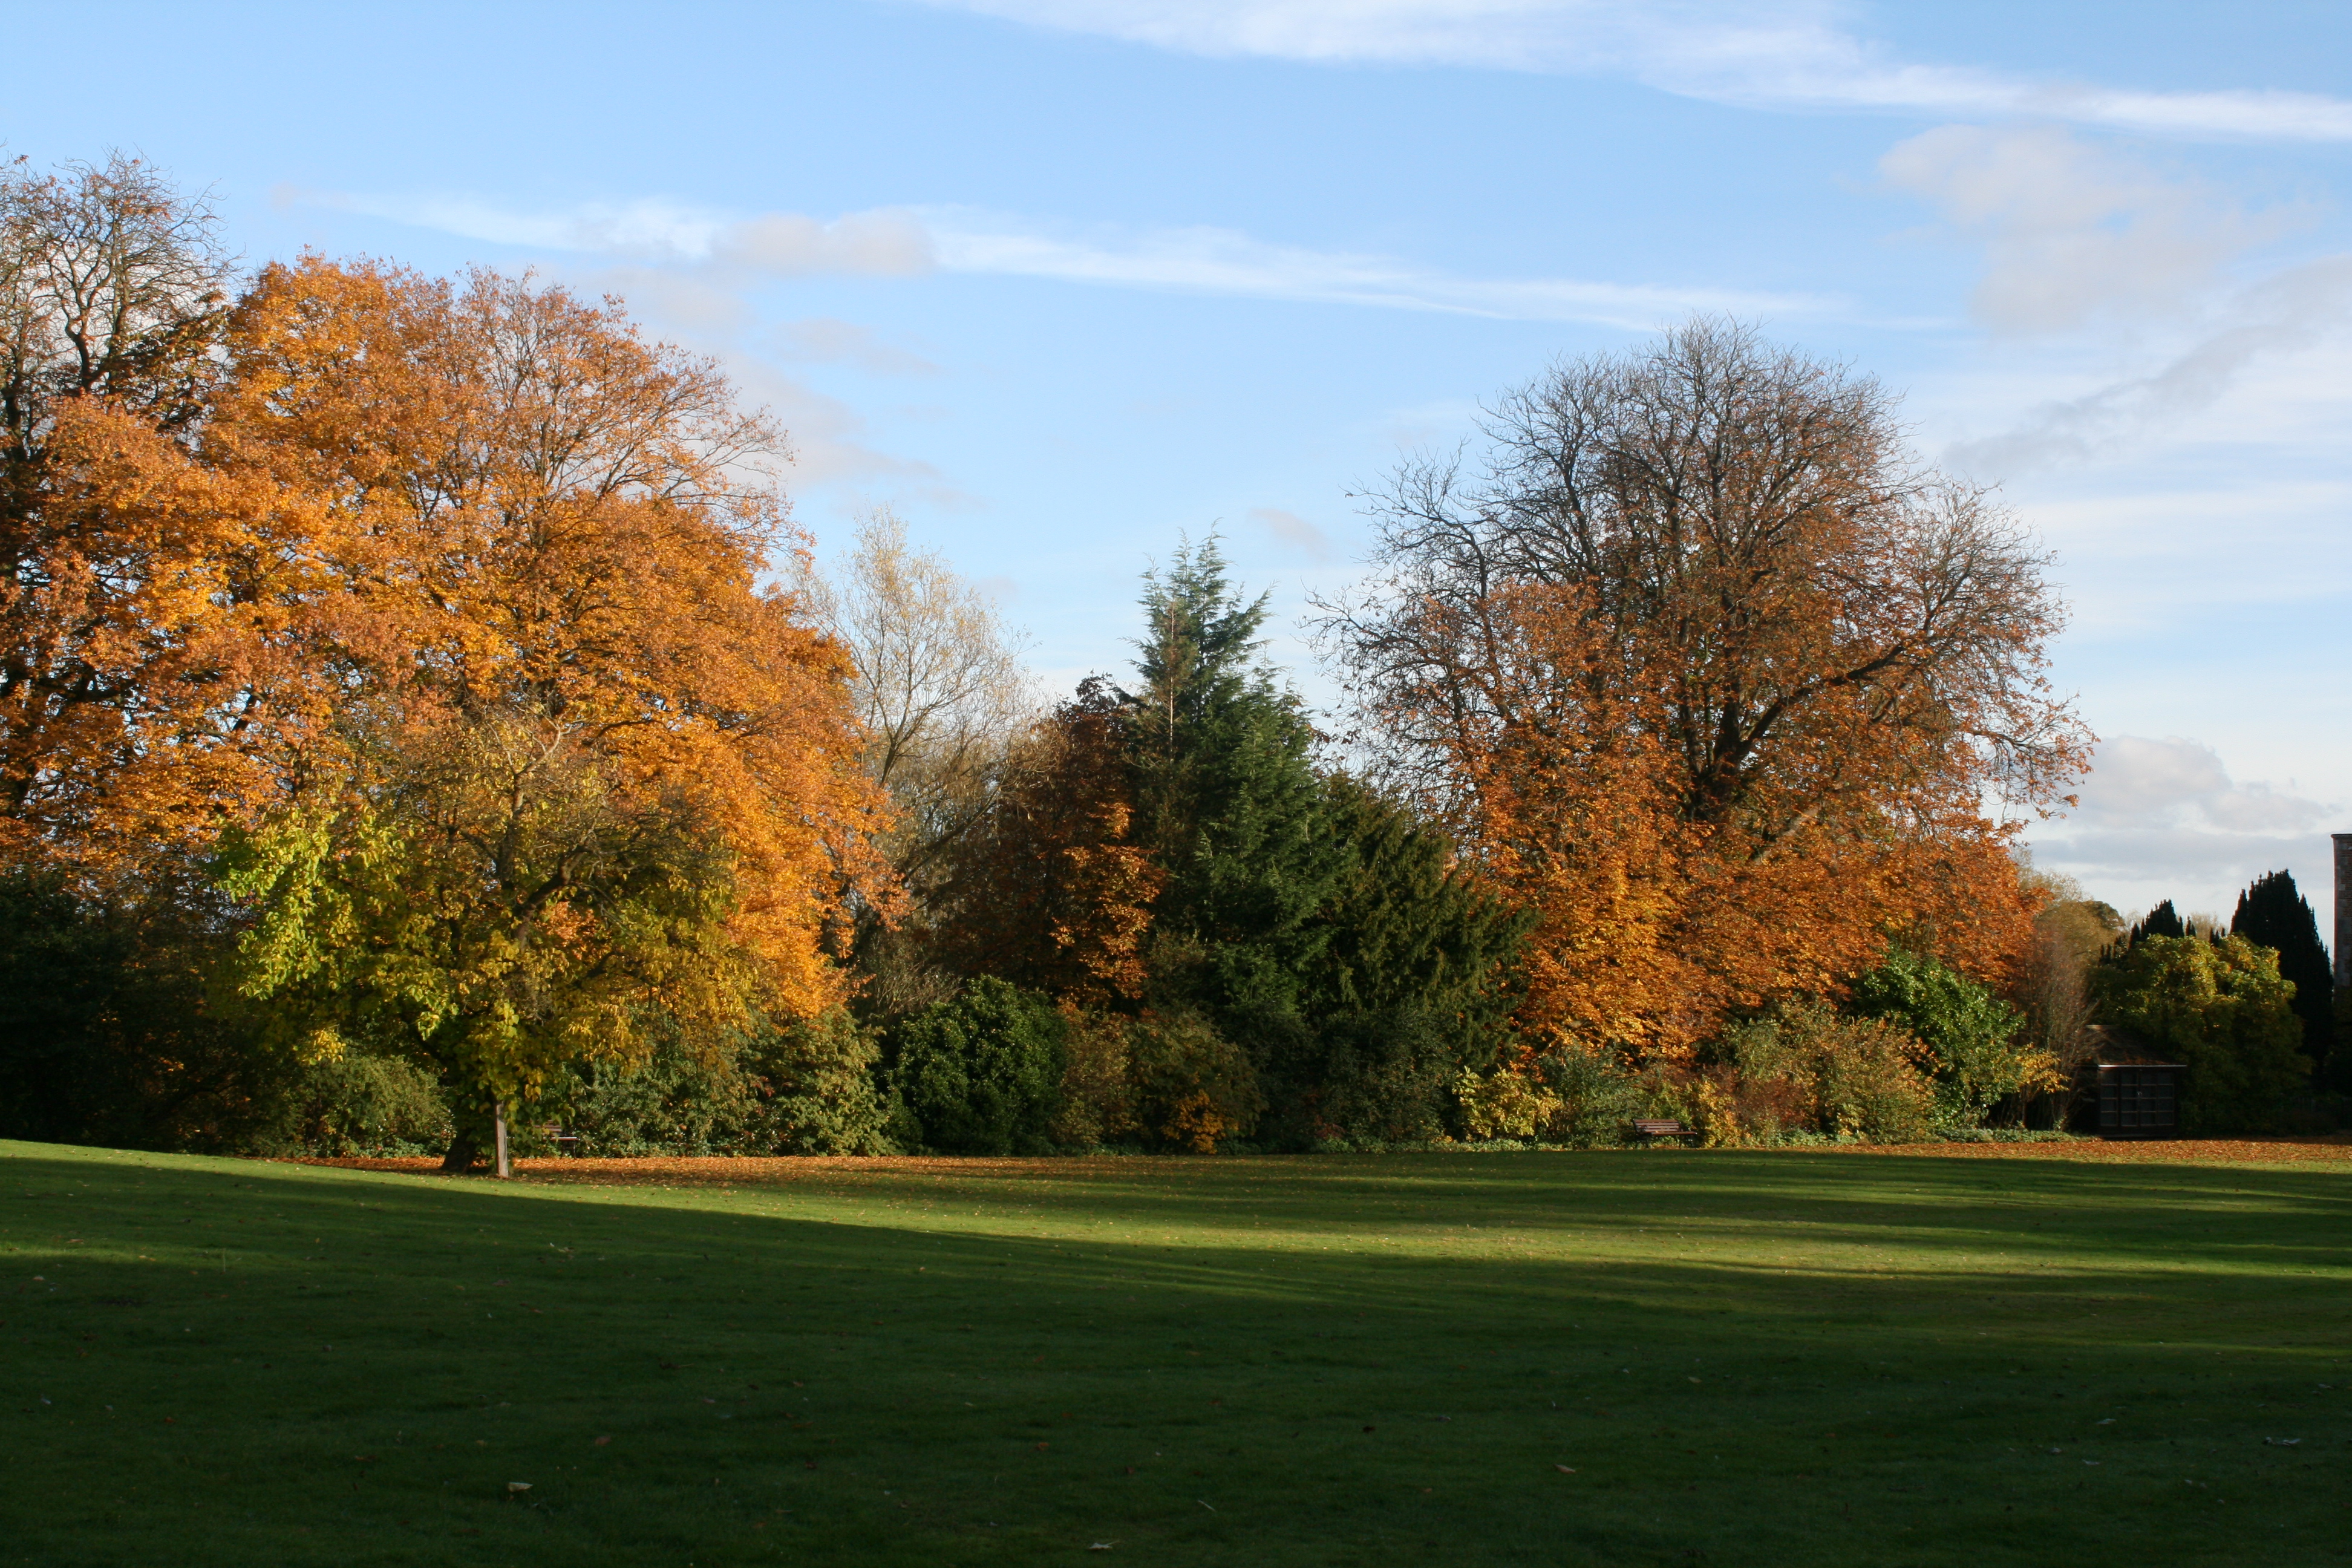 Trees in autumn with grass in the foreground